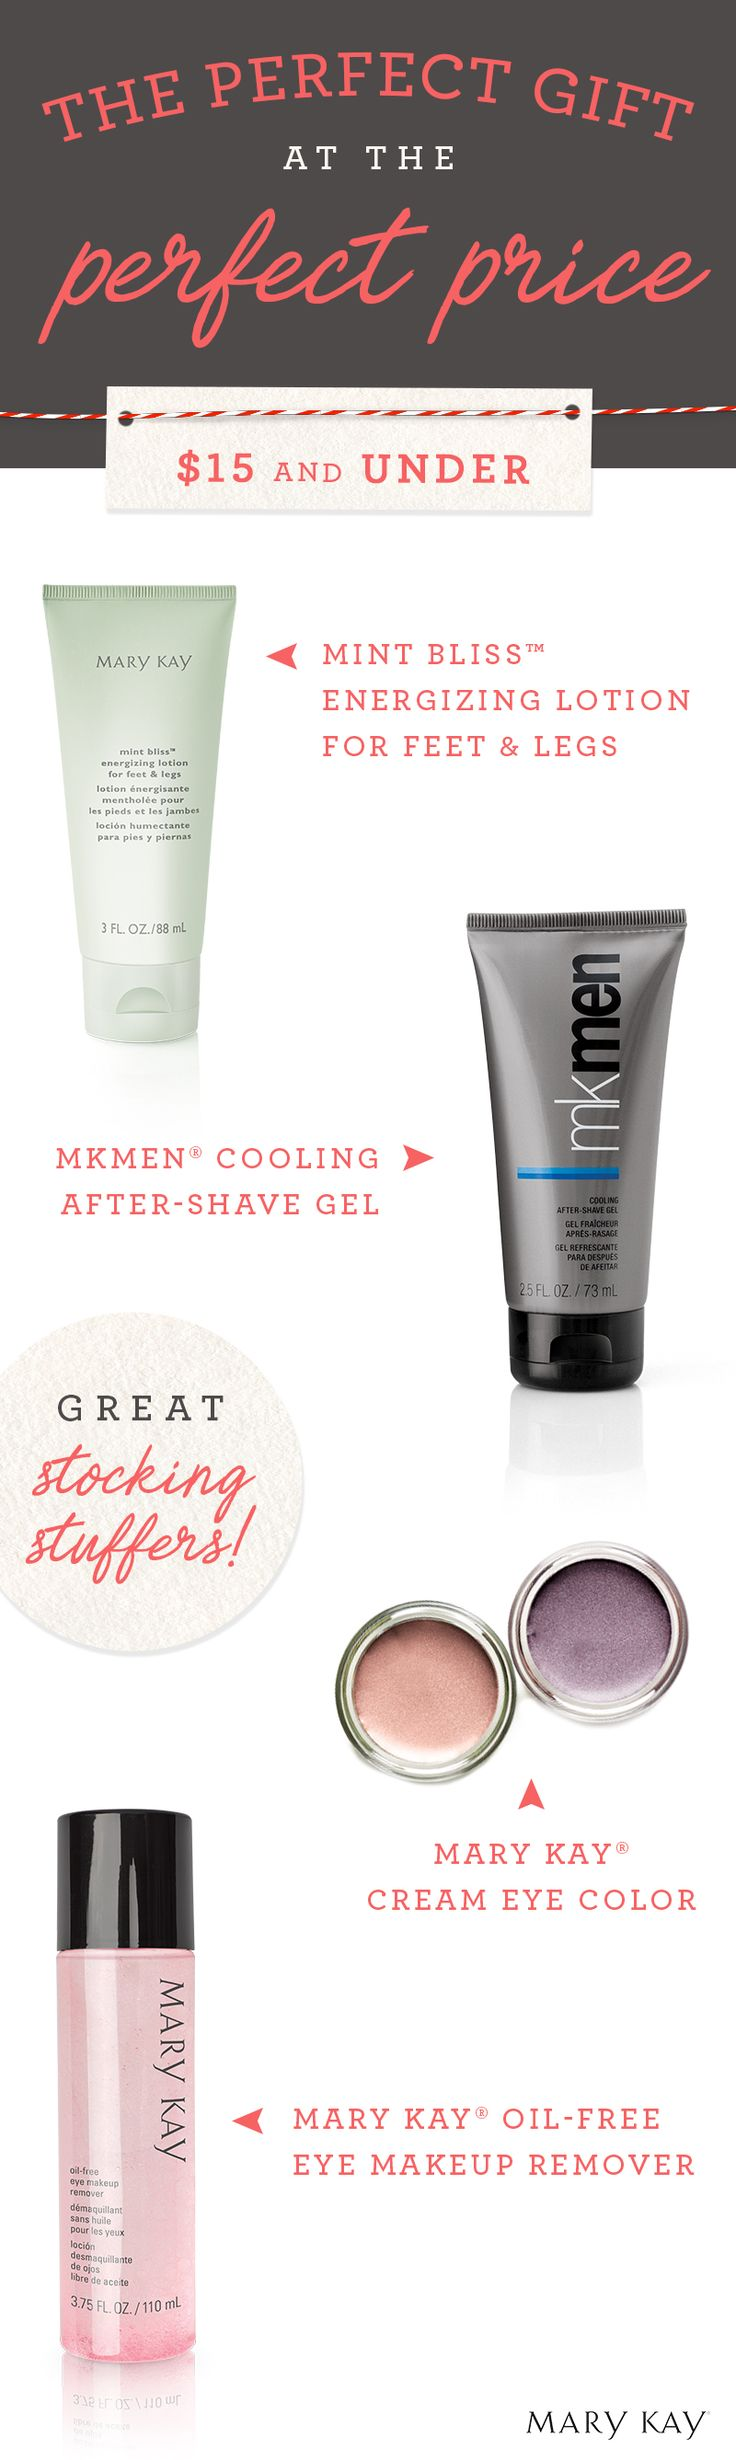 Share the holiday cheer with stocking stuffers and pampering gifts for under $15 that everyone on your list will love!   Mary Kay